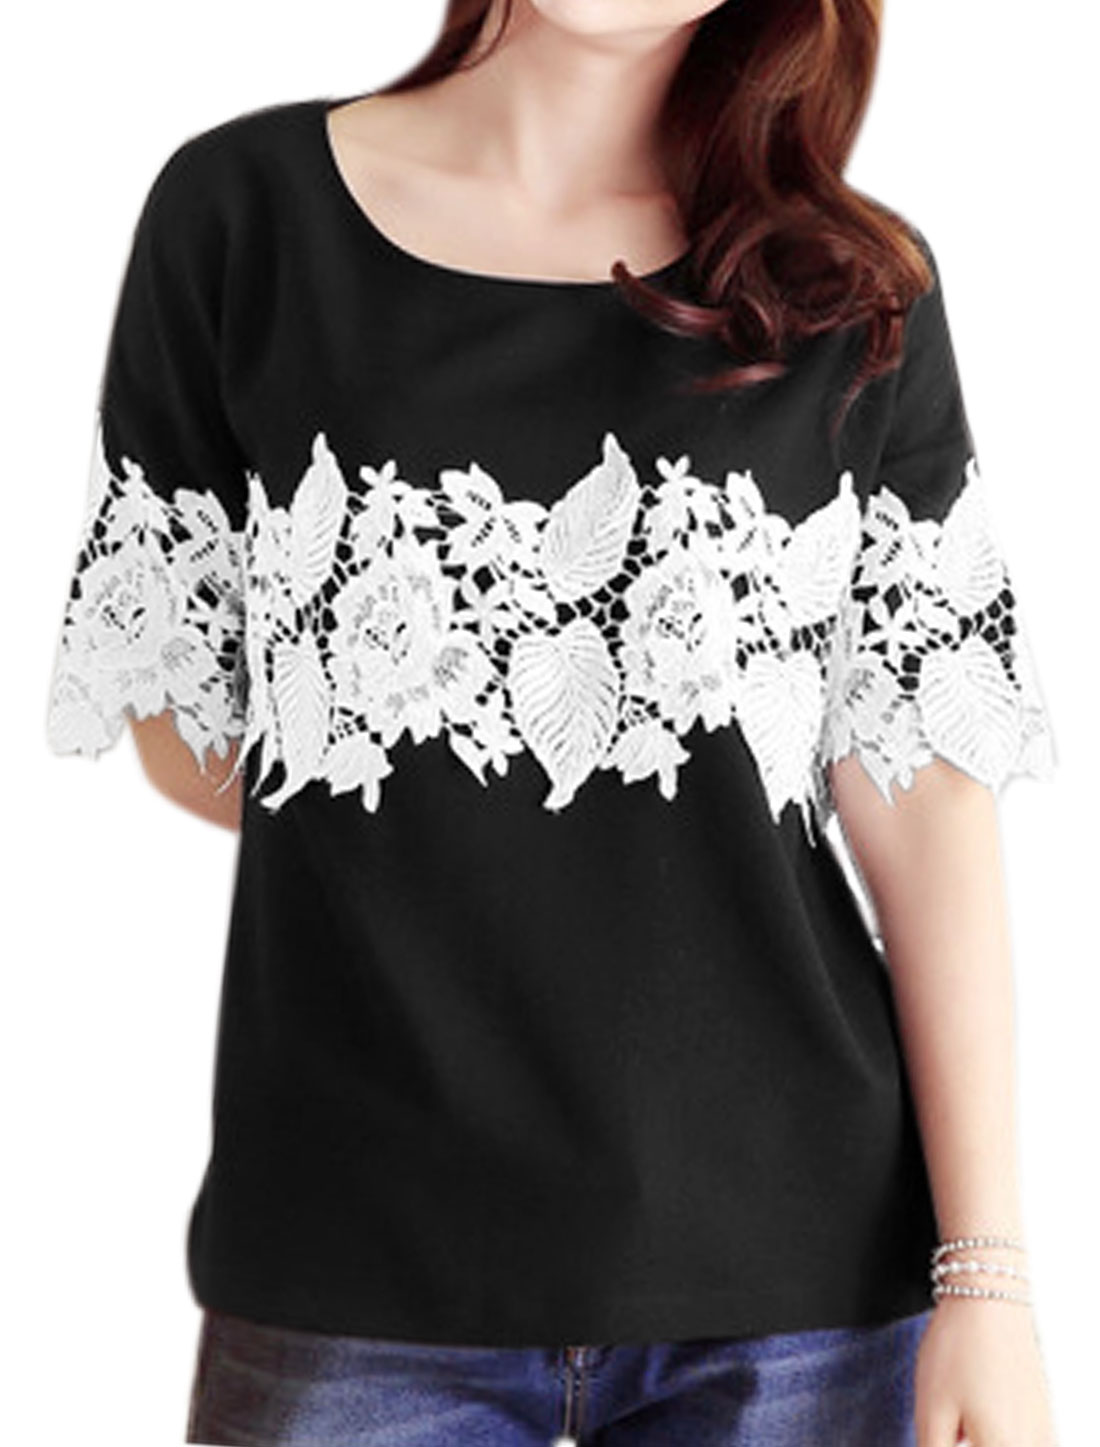 Women Round Neck Short Sleeves Crochet Tee Shirt Black XS